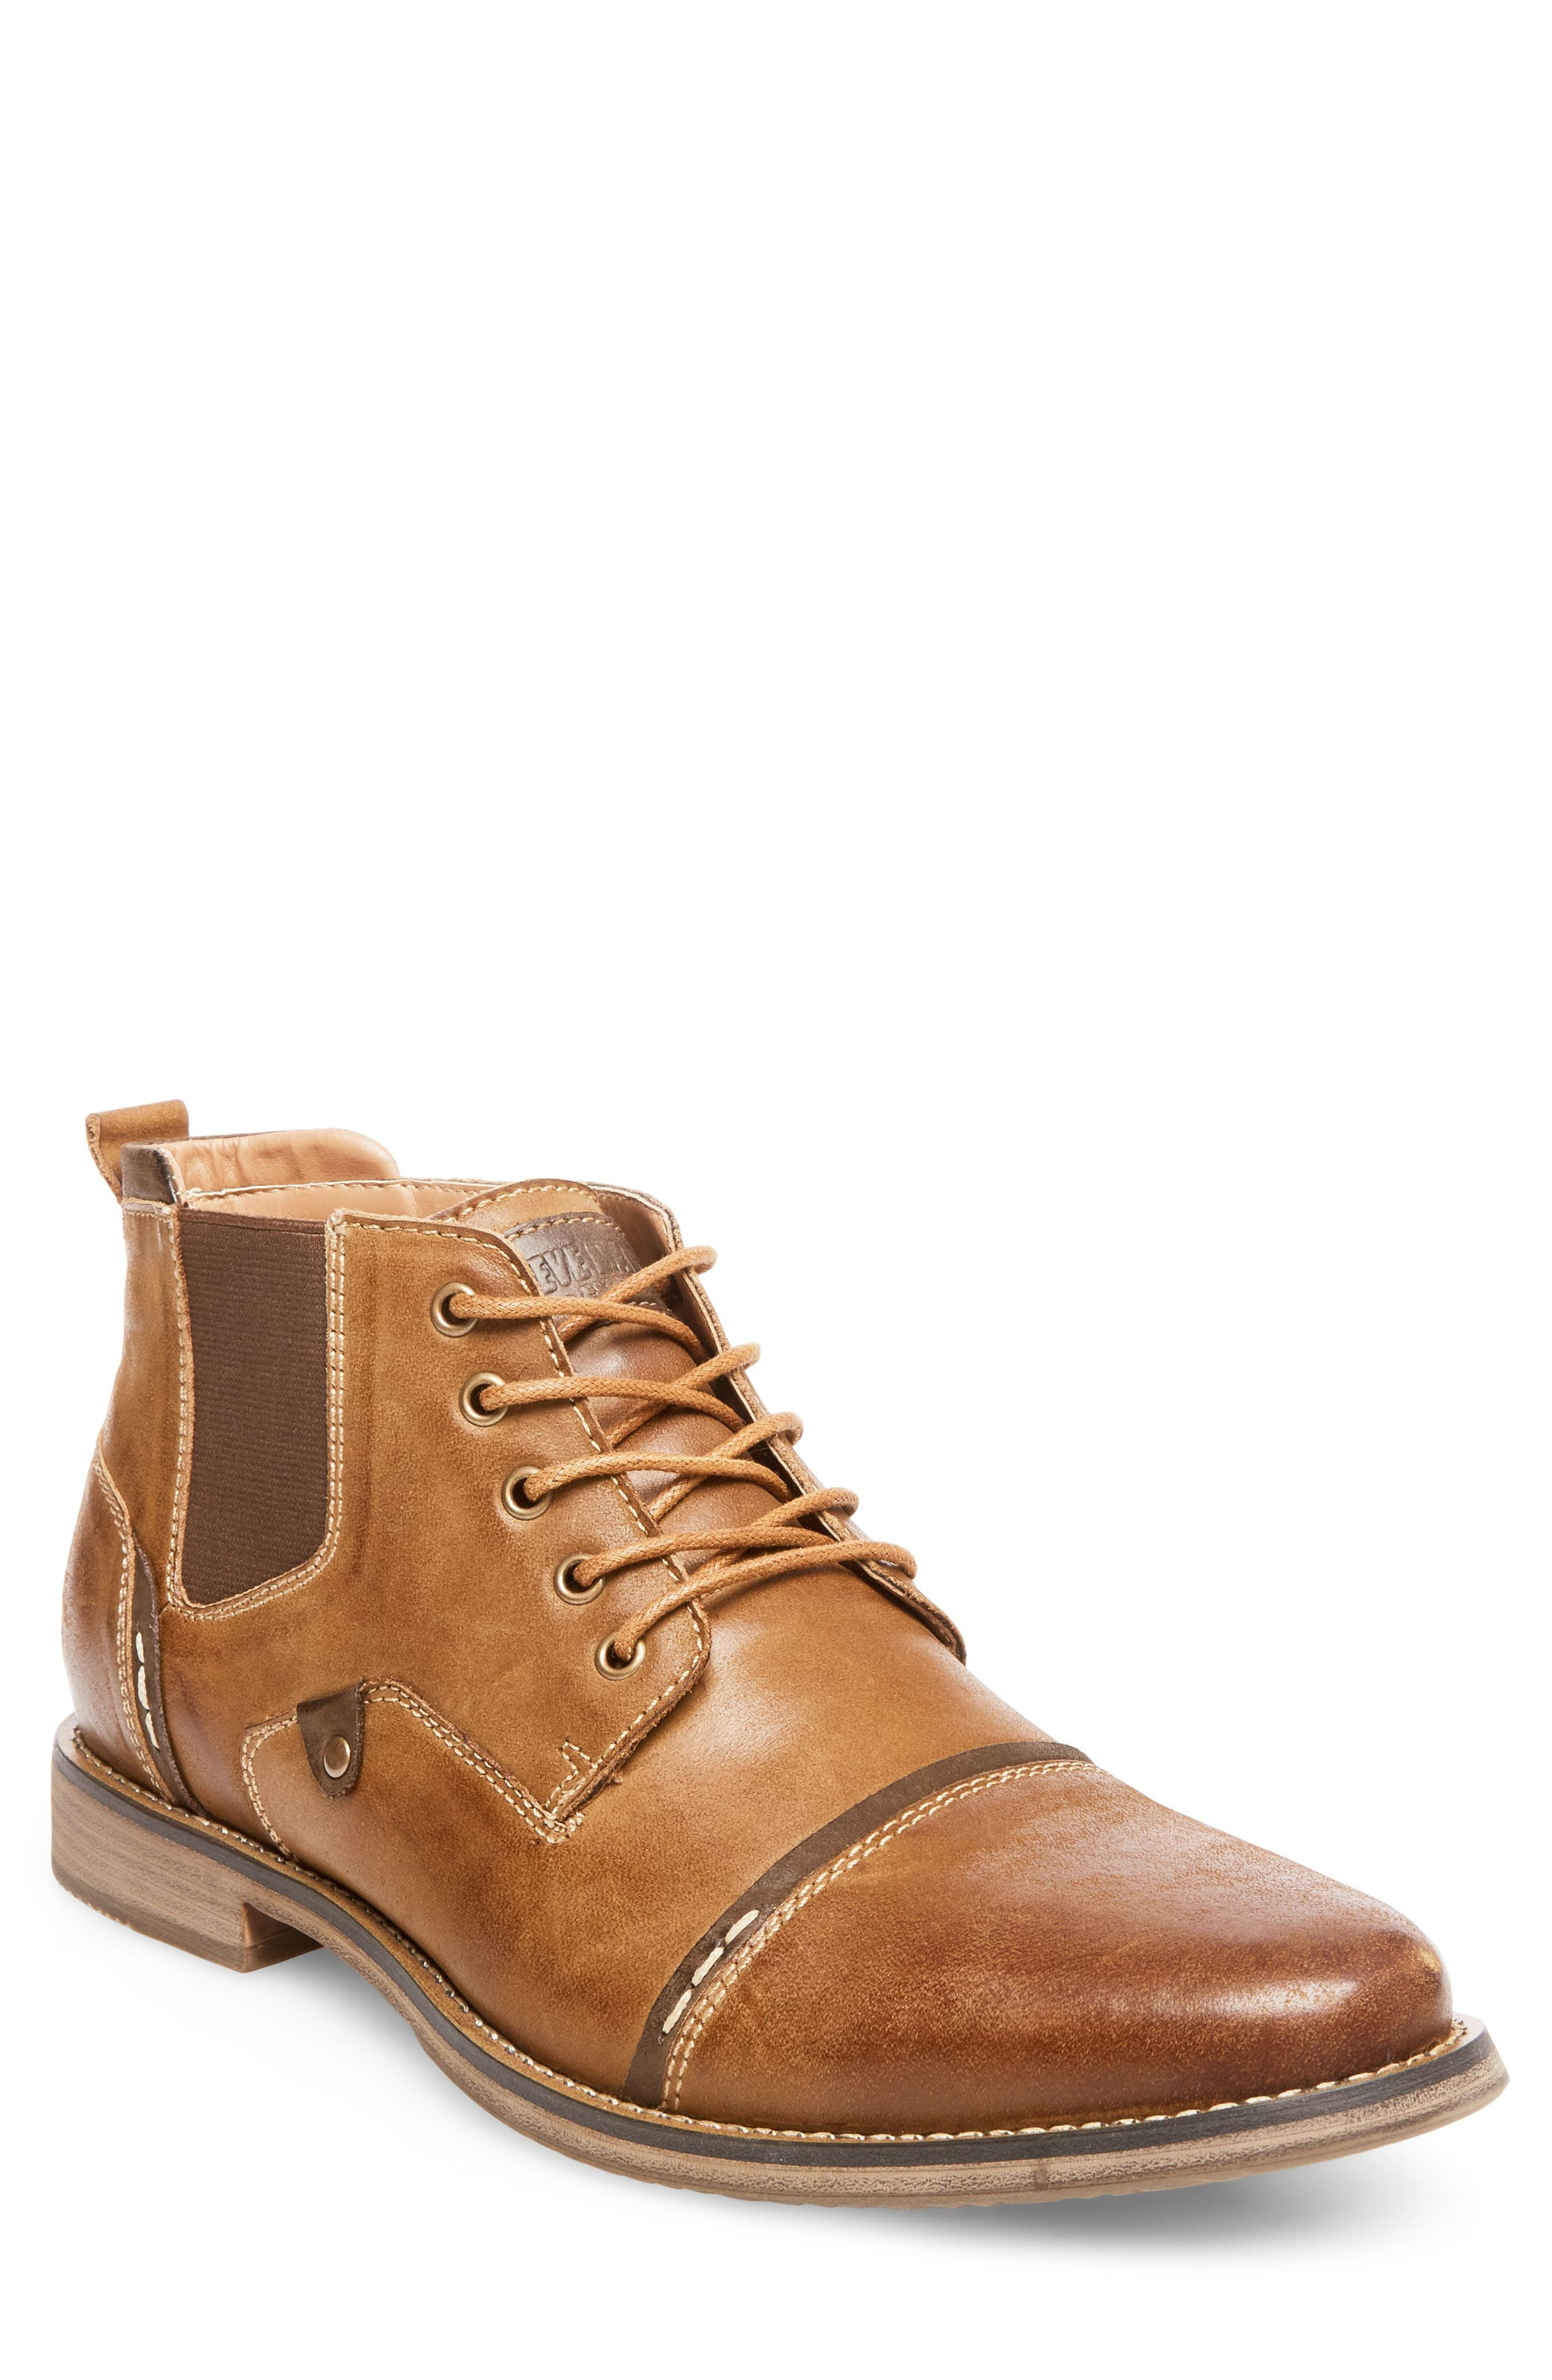 Proxy Cap Toe Boot,                             Main thumbnail 1, color,                             200